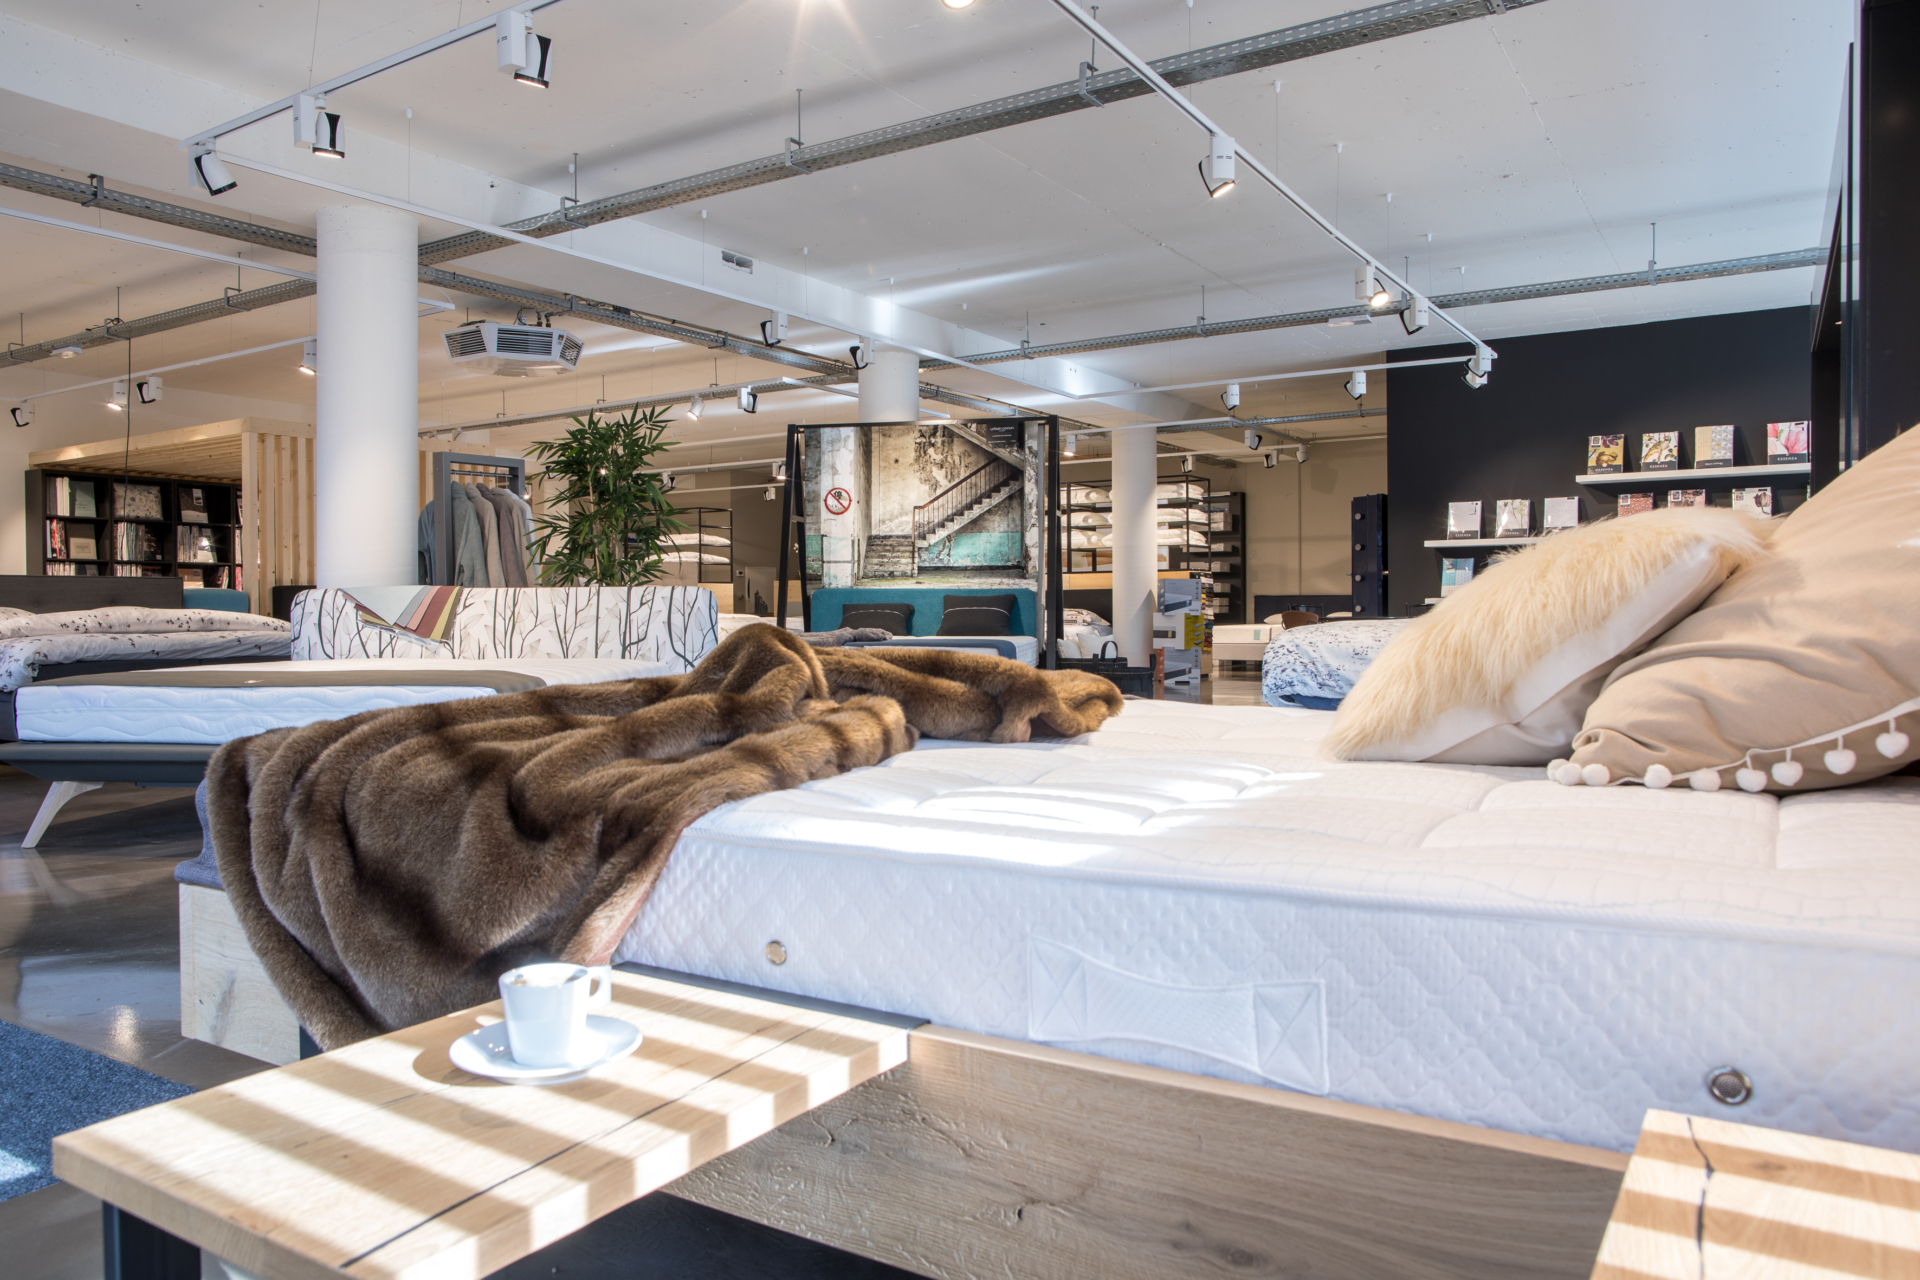 Bedding Slaapcomfort Showroom Ede